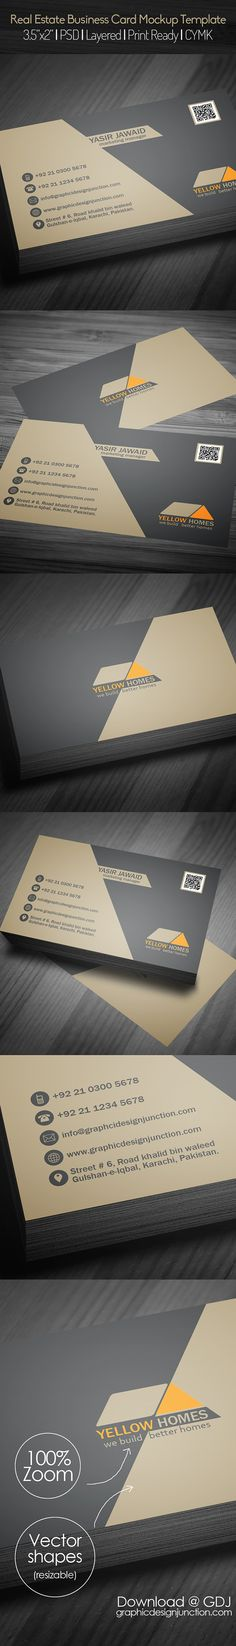 Cinematography business card template pinterest card templates real estate business card psd template freebie on behance reheart Image collections